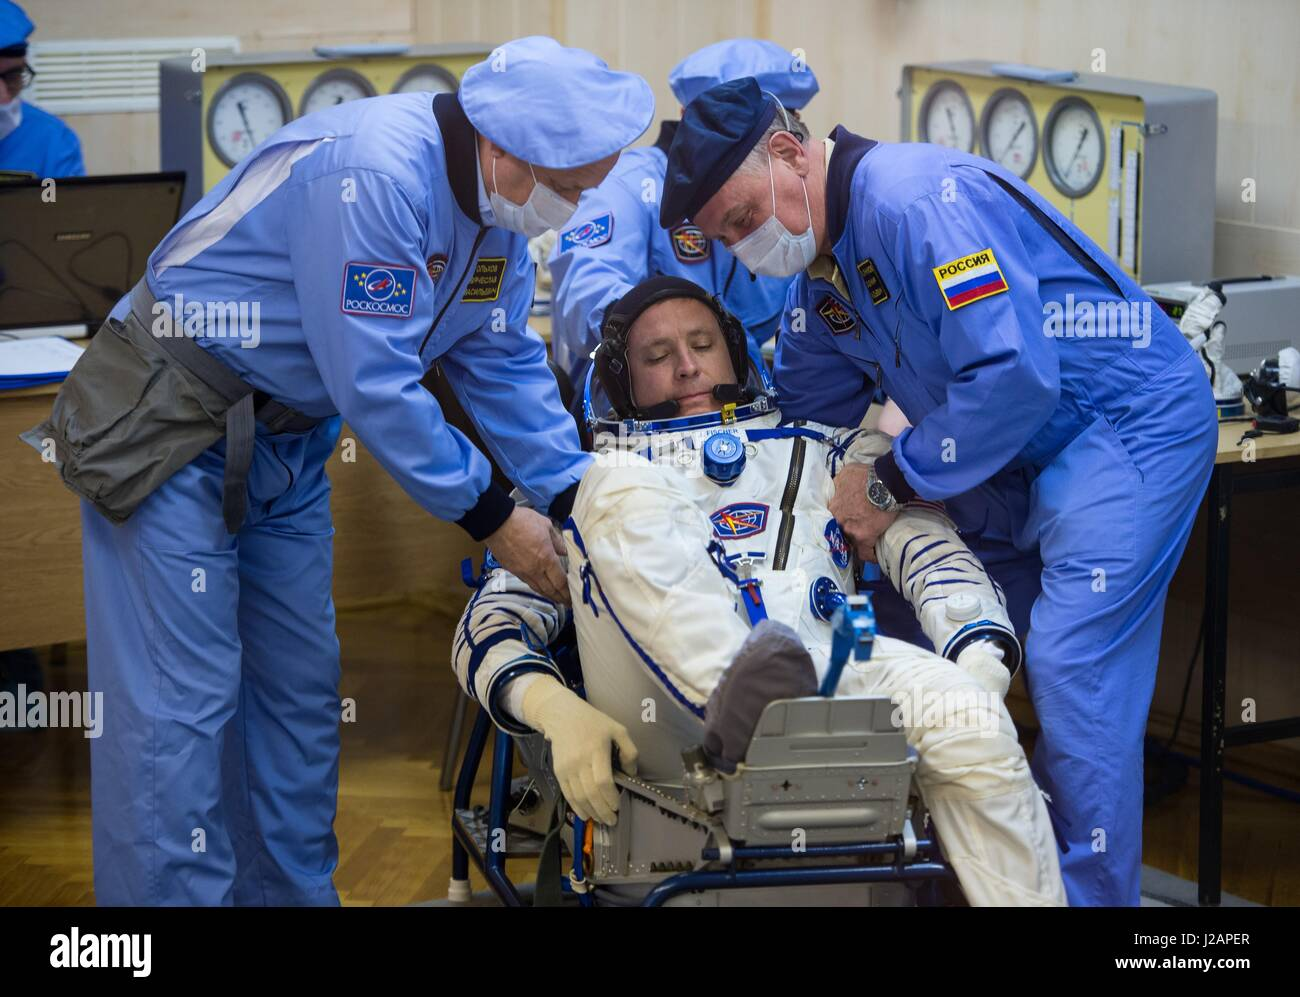 NASA International Space Station Expedition 51 prime crew member American astronaut Jack Fischer has his Russian - Stock Image